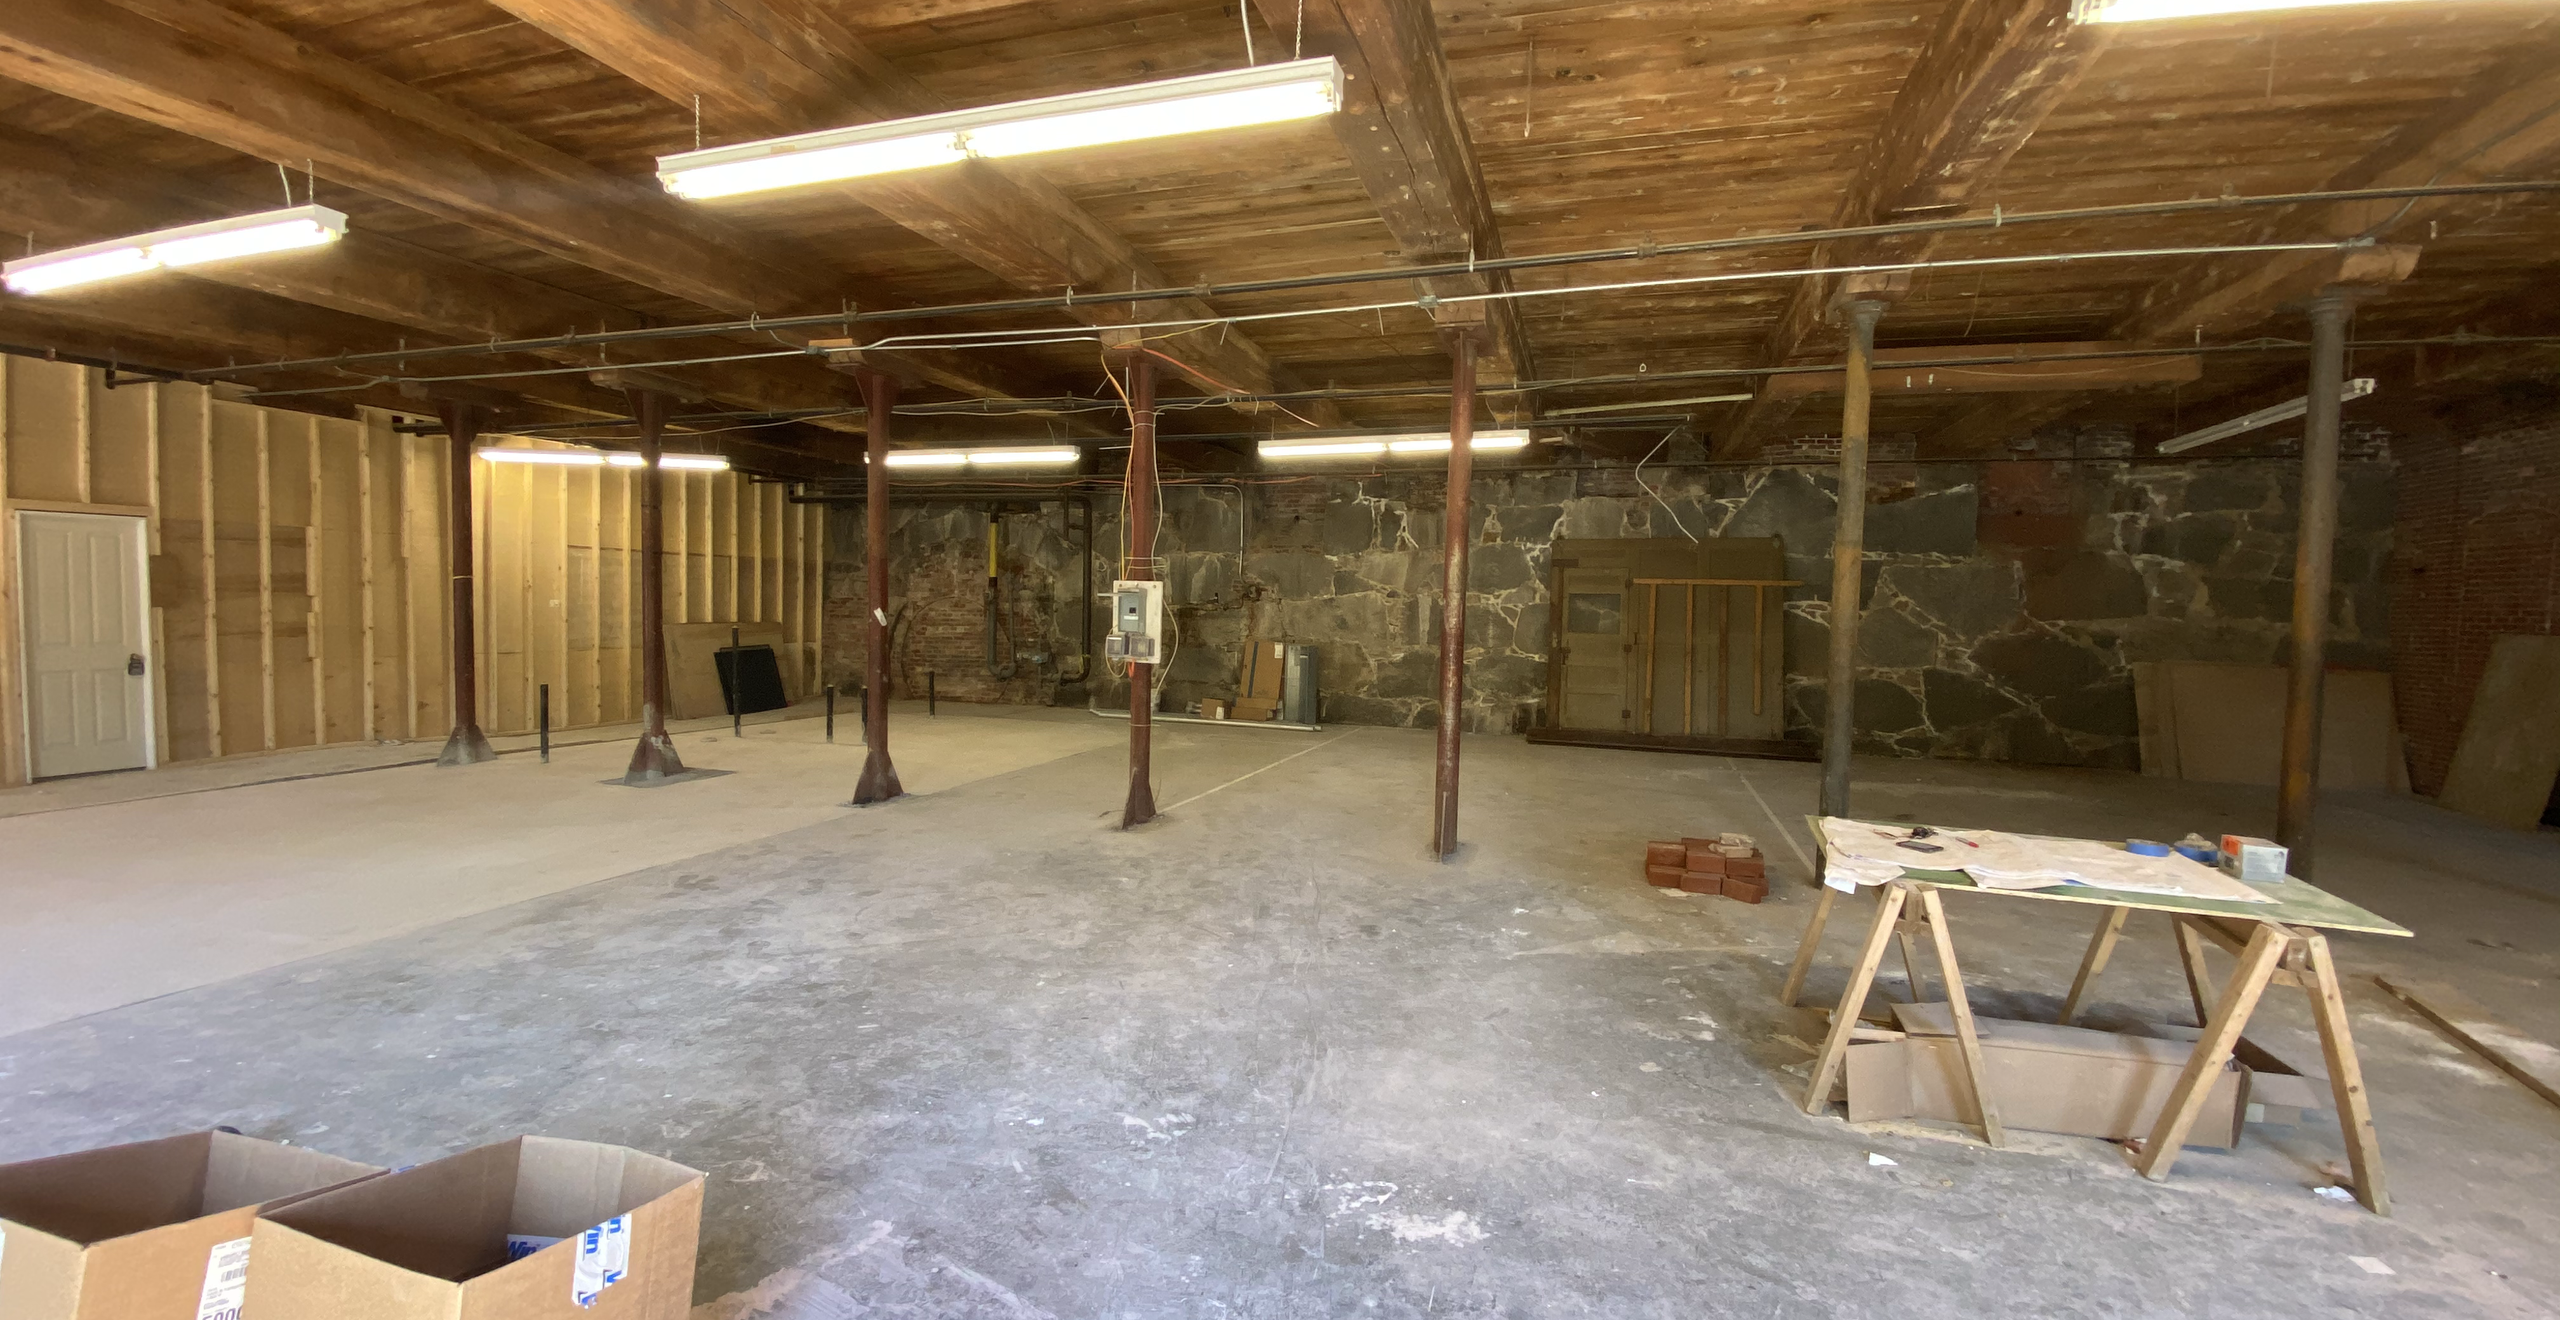 Interior space fitted with existing concrete floors, ceiling beams, and stone